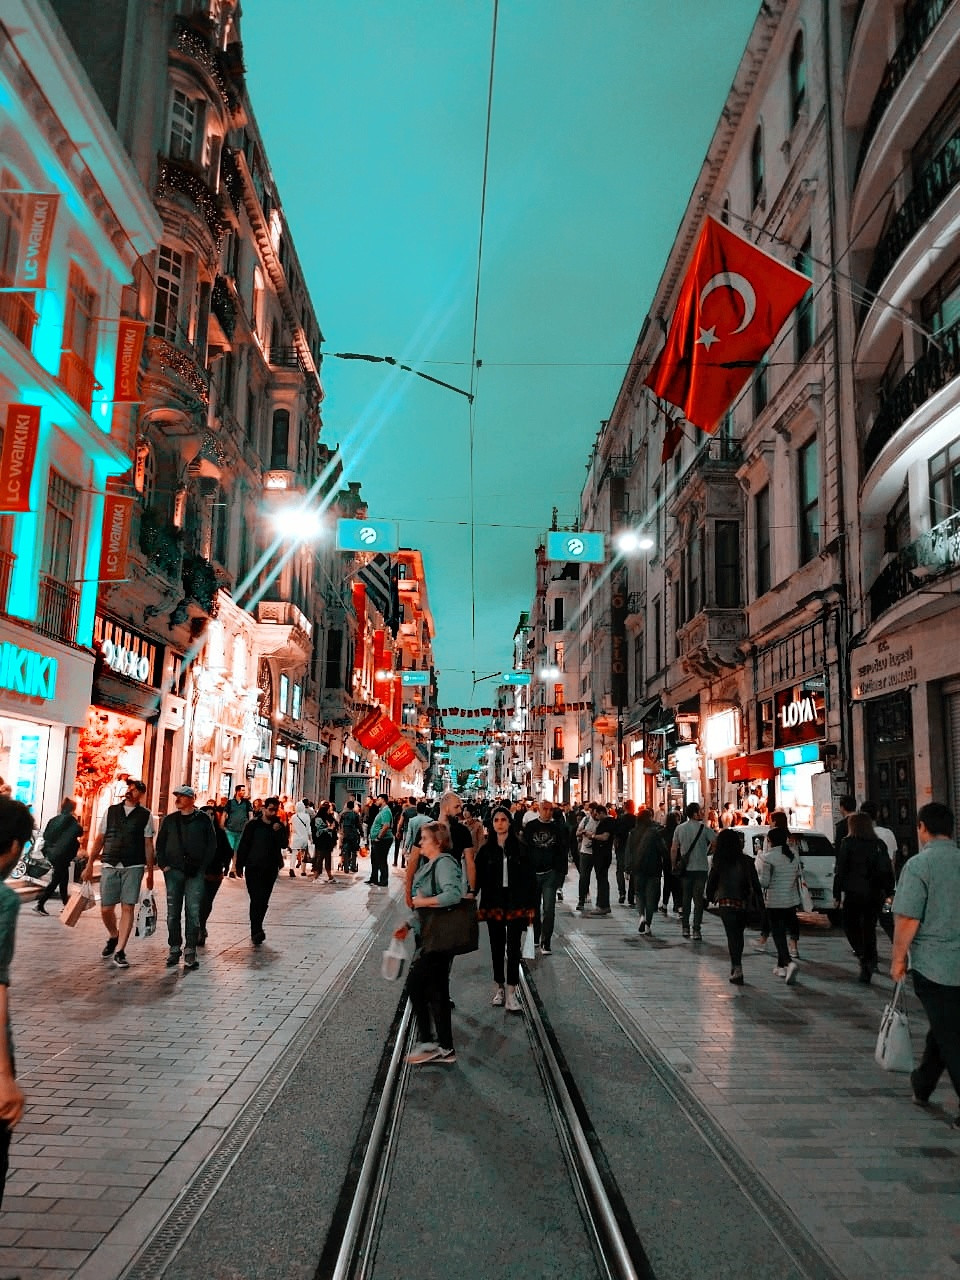 Taksim Square | Istanbul | istiklal street | taksim to tunel | tram | travel blog | istanbul itinerary | baklava | galata bridge | blue mosque | hagia sophia | topkapi palace | galata bridge | galata tower | bosphorus | grand bazaar | turkey | turkey tourism | karakoy |